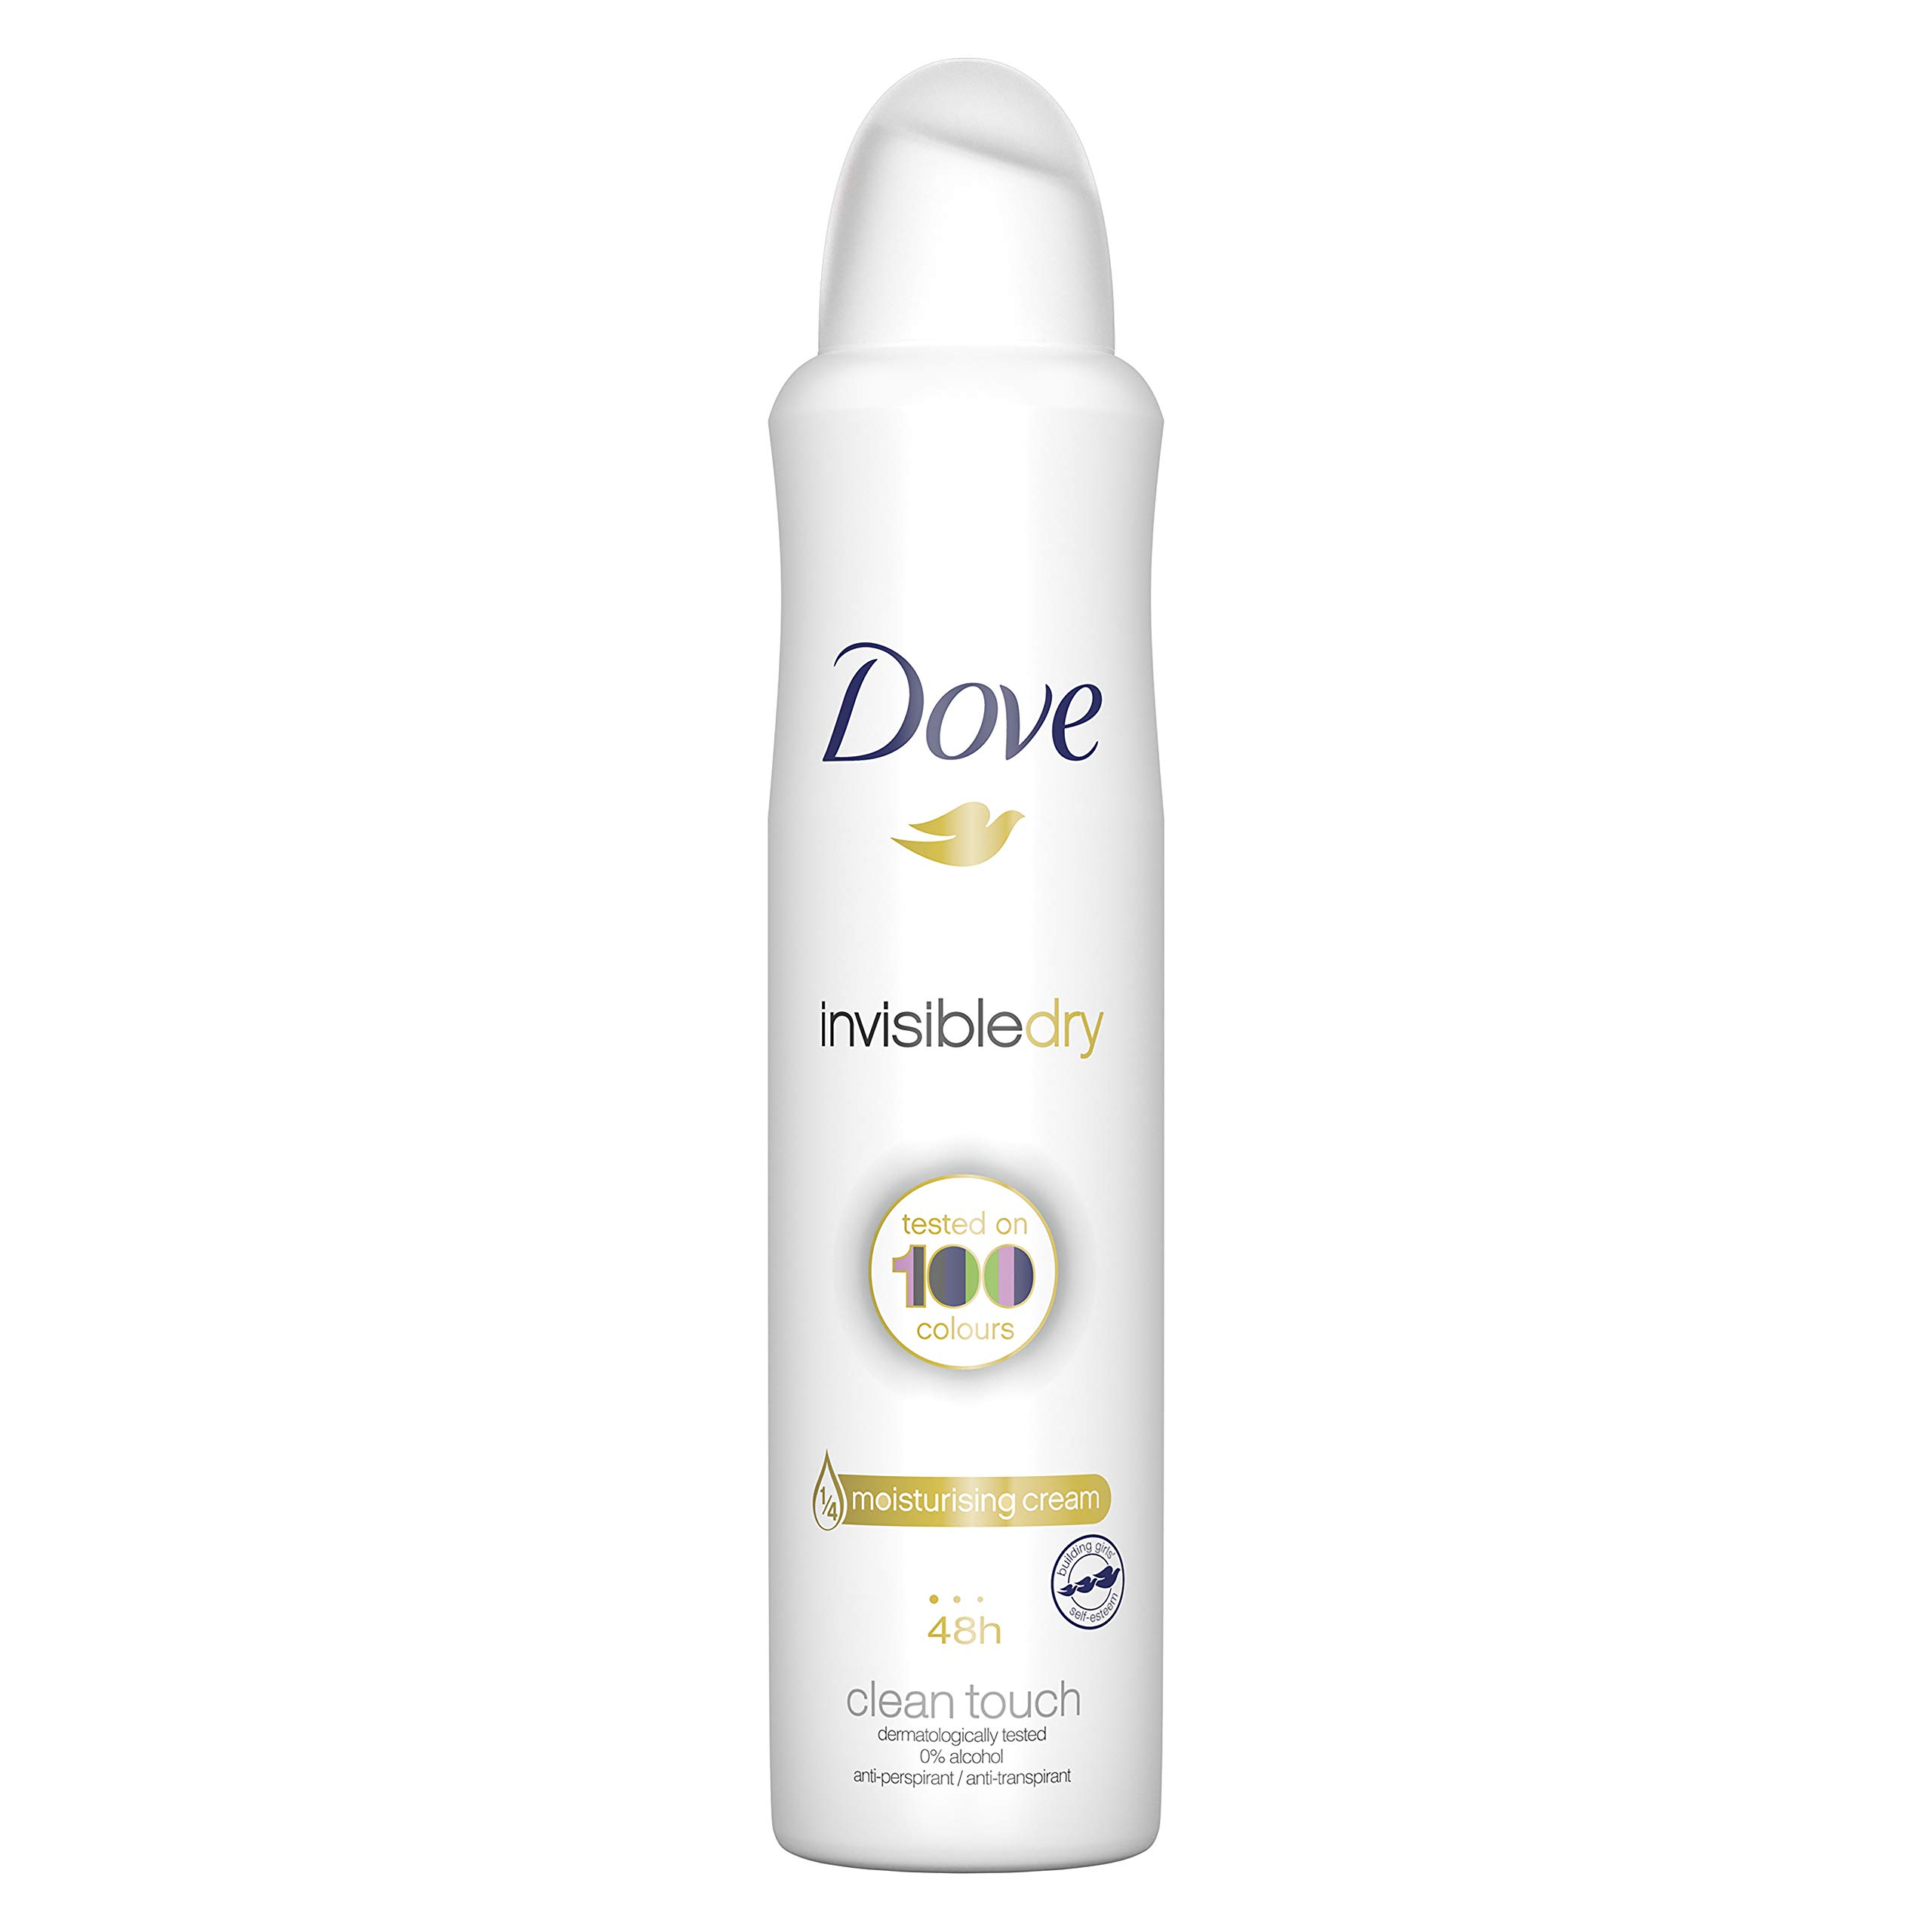 Dove Invisible Dry 48h Anti-Perspirant Deodorant, 250ml